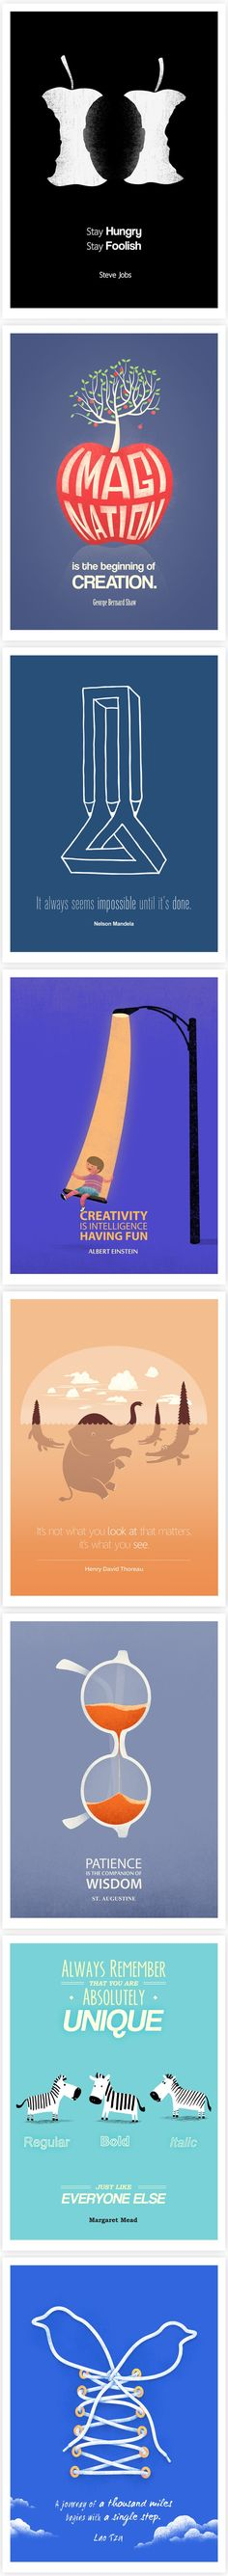 Famous Quotes are Paired with Clever Illustrations.... The one from Albert Einstein and Margaret Mead are my favourite for a classroom